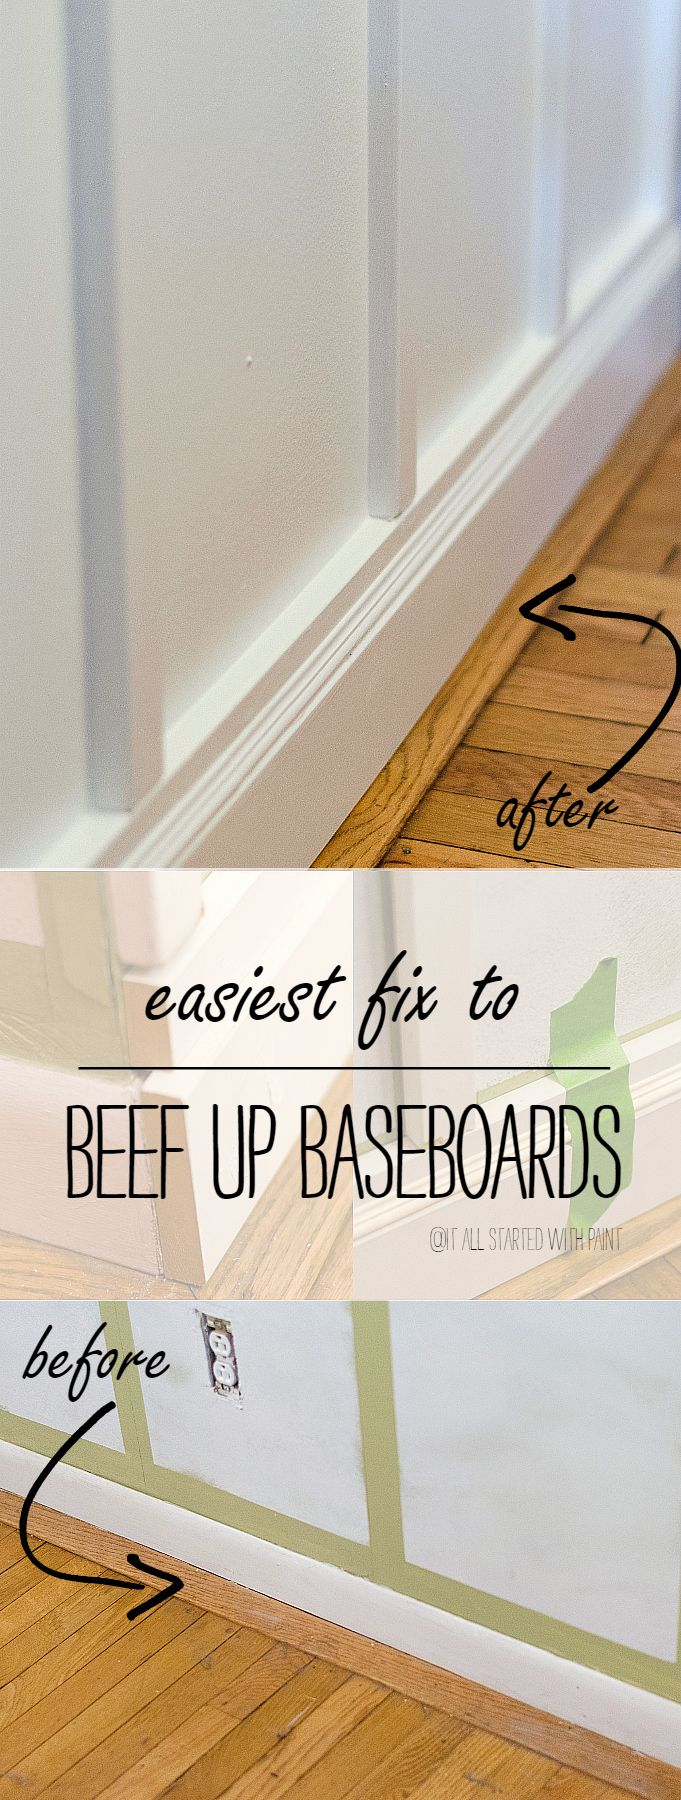 Easy Way To Beef Up Your Baseboards Without Removing Old Baseboards; Simply Nail/Glue MDF Boards Over Old Baseboards